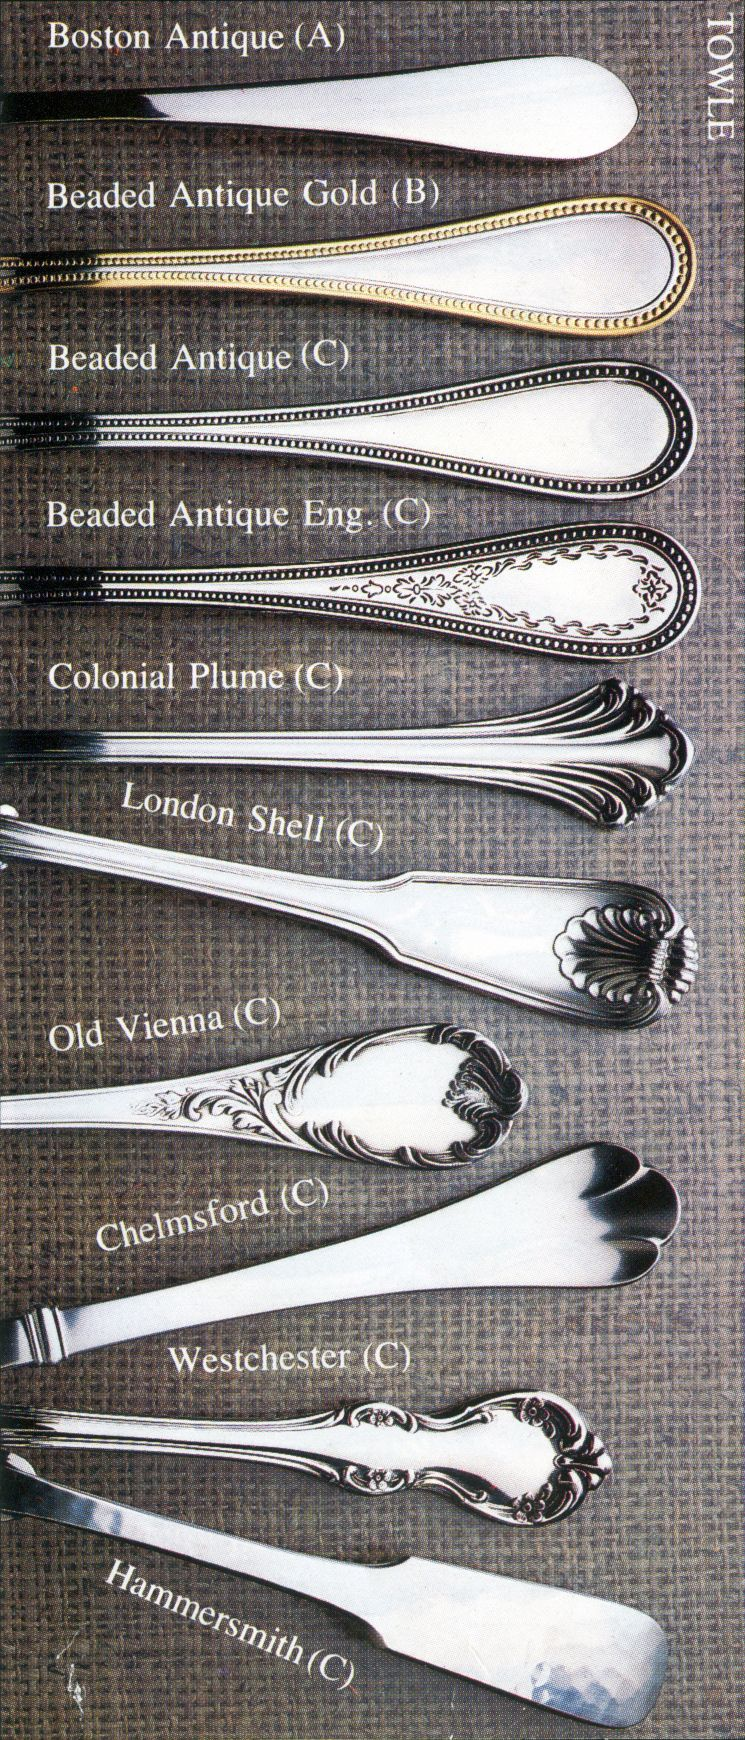 Towle Stainless Flatware Patterns The Table Pinterest